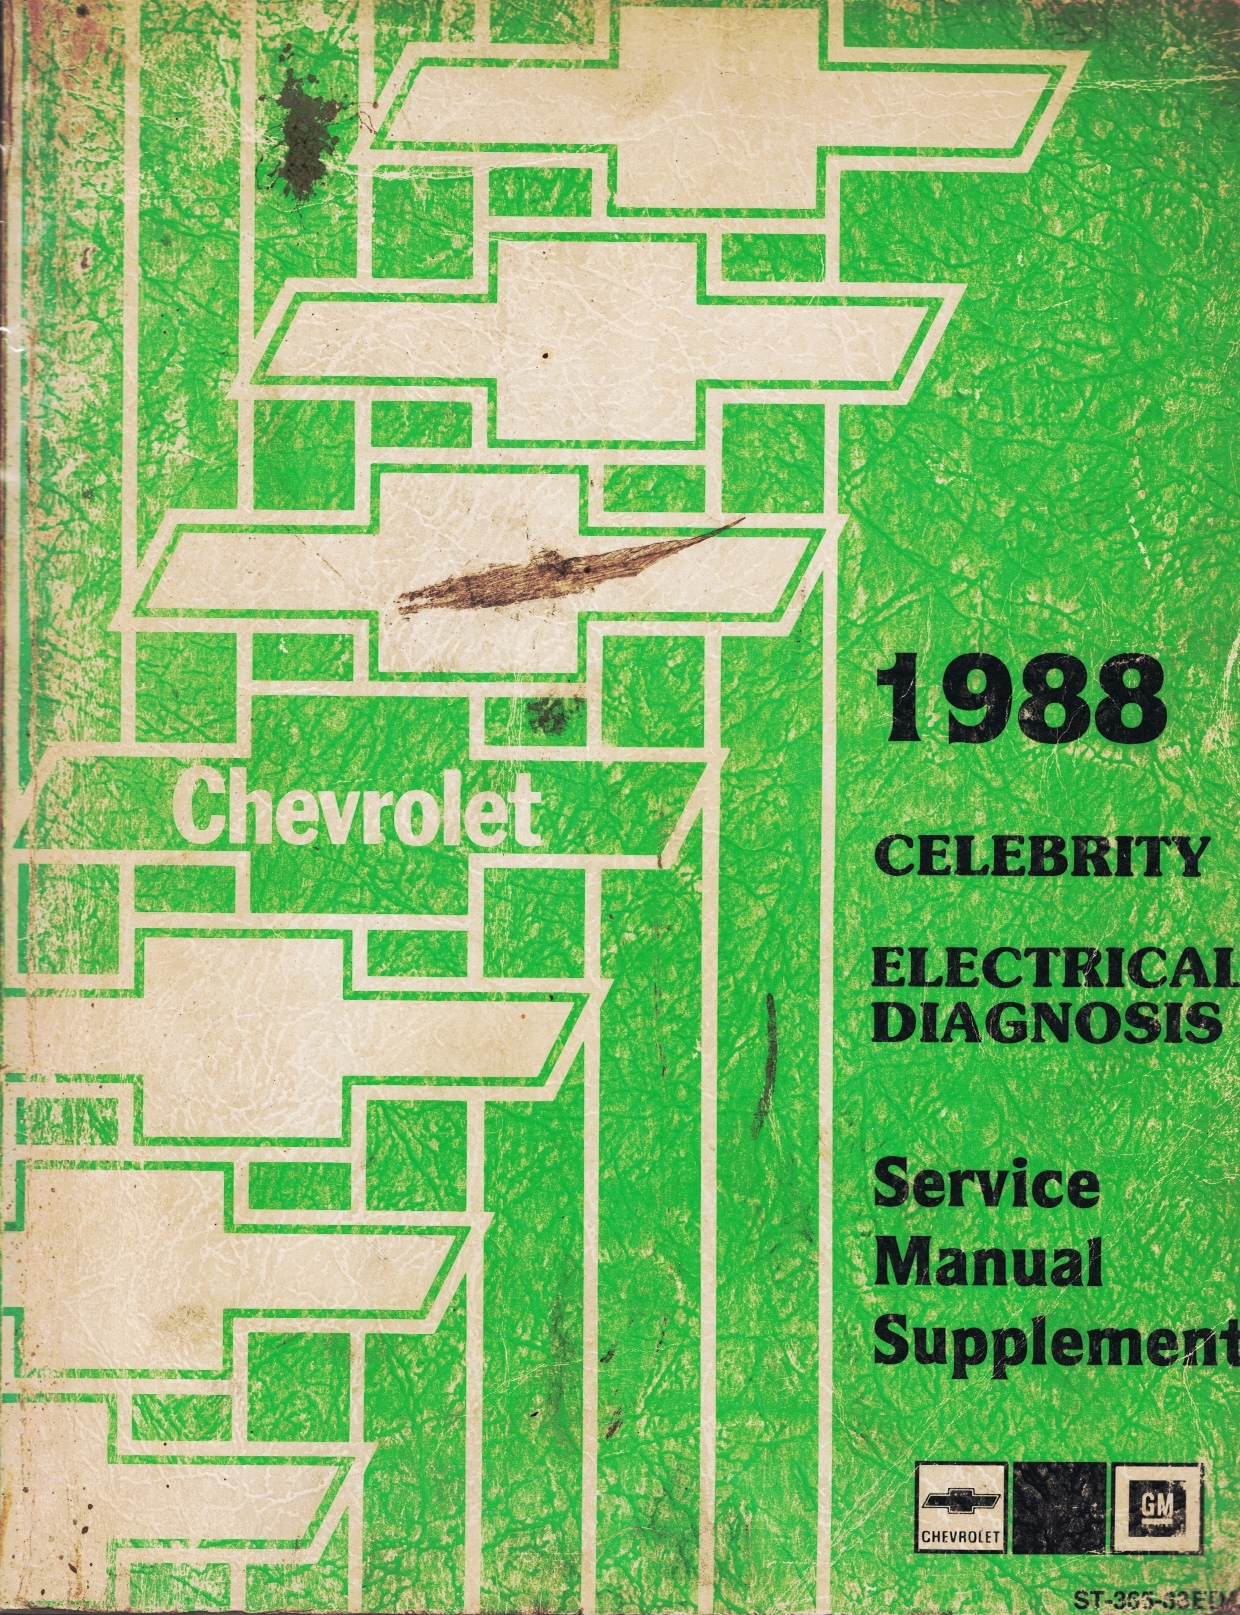 """Image for 1988 Chevrolet Celebrity Service Manual - 2 Volume Set; includes the """"Service Manual"""", and the """"Electrical Diagnosis Service Manual Supplement"""""""